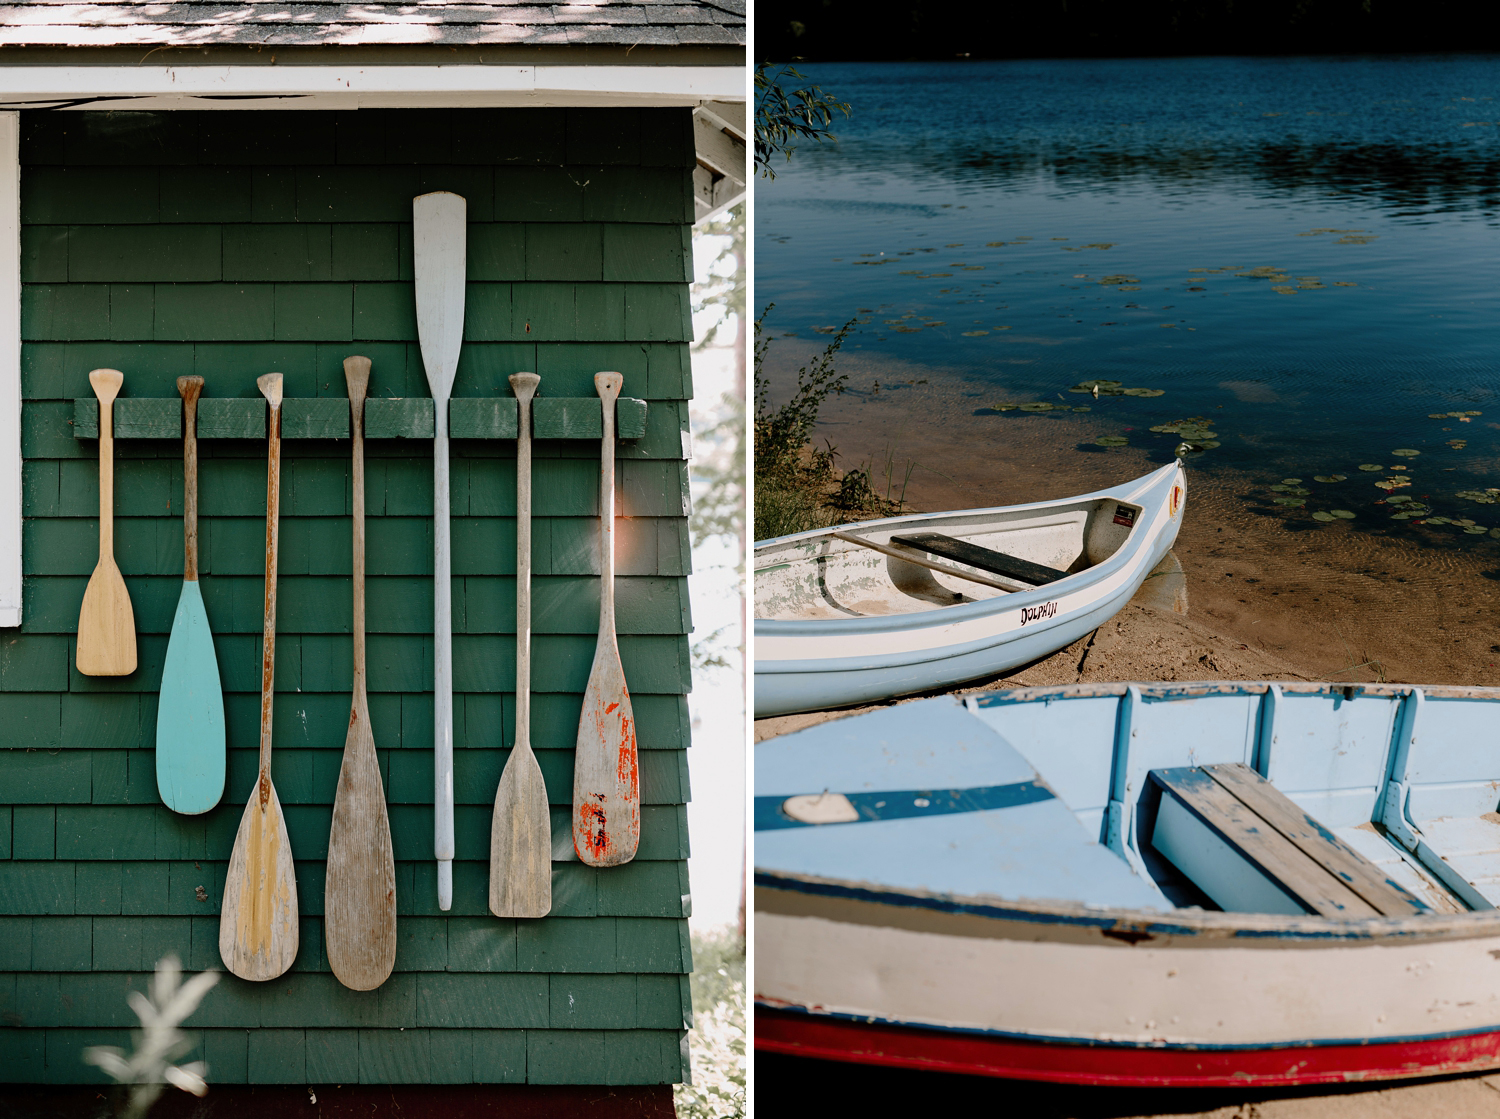 camp boats and wooden paddles